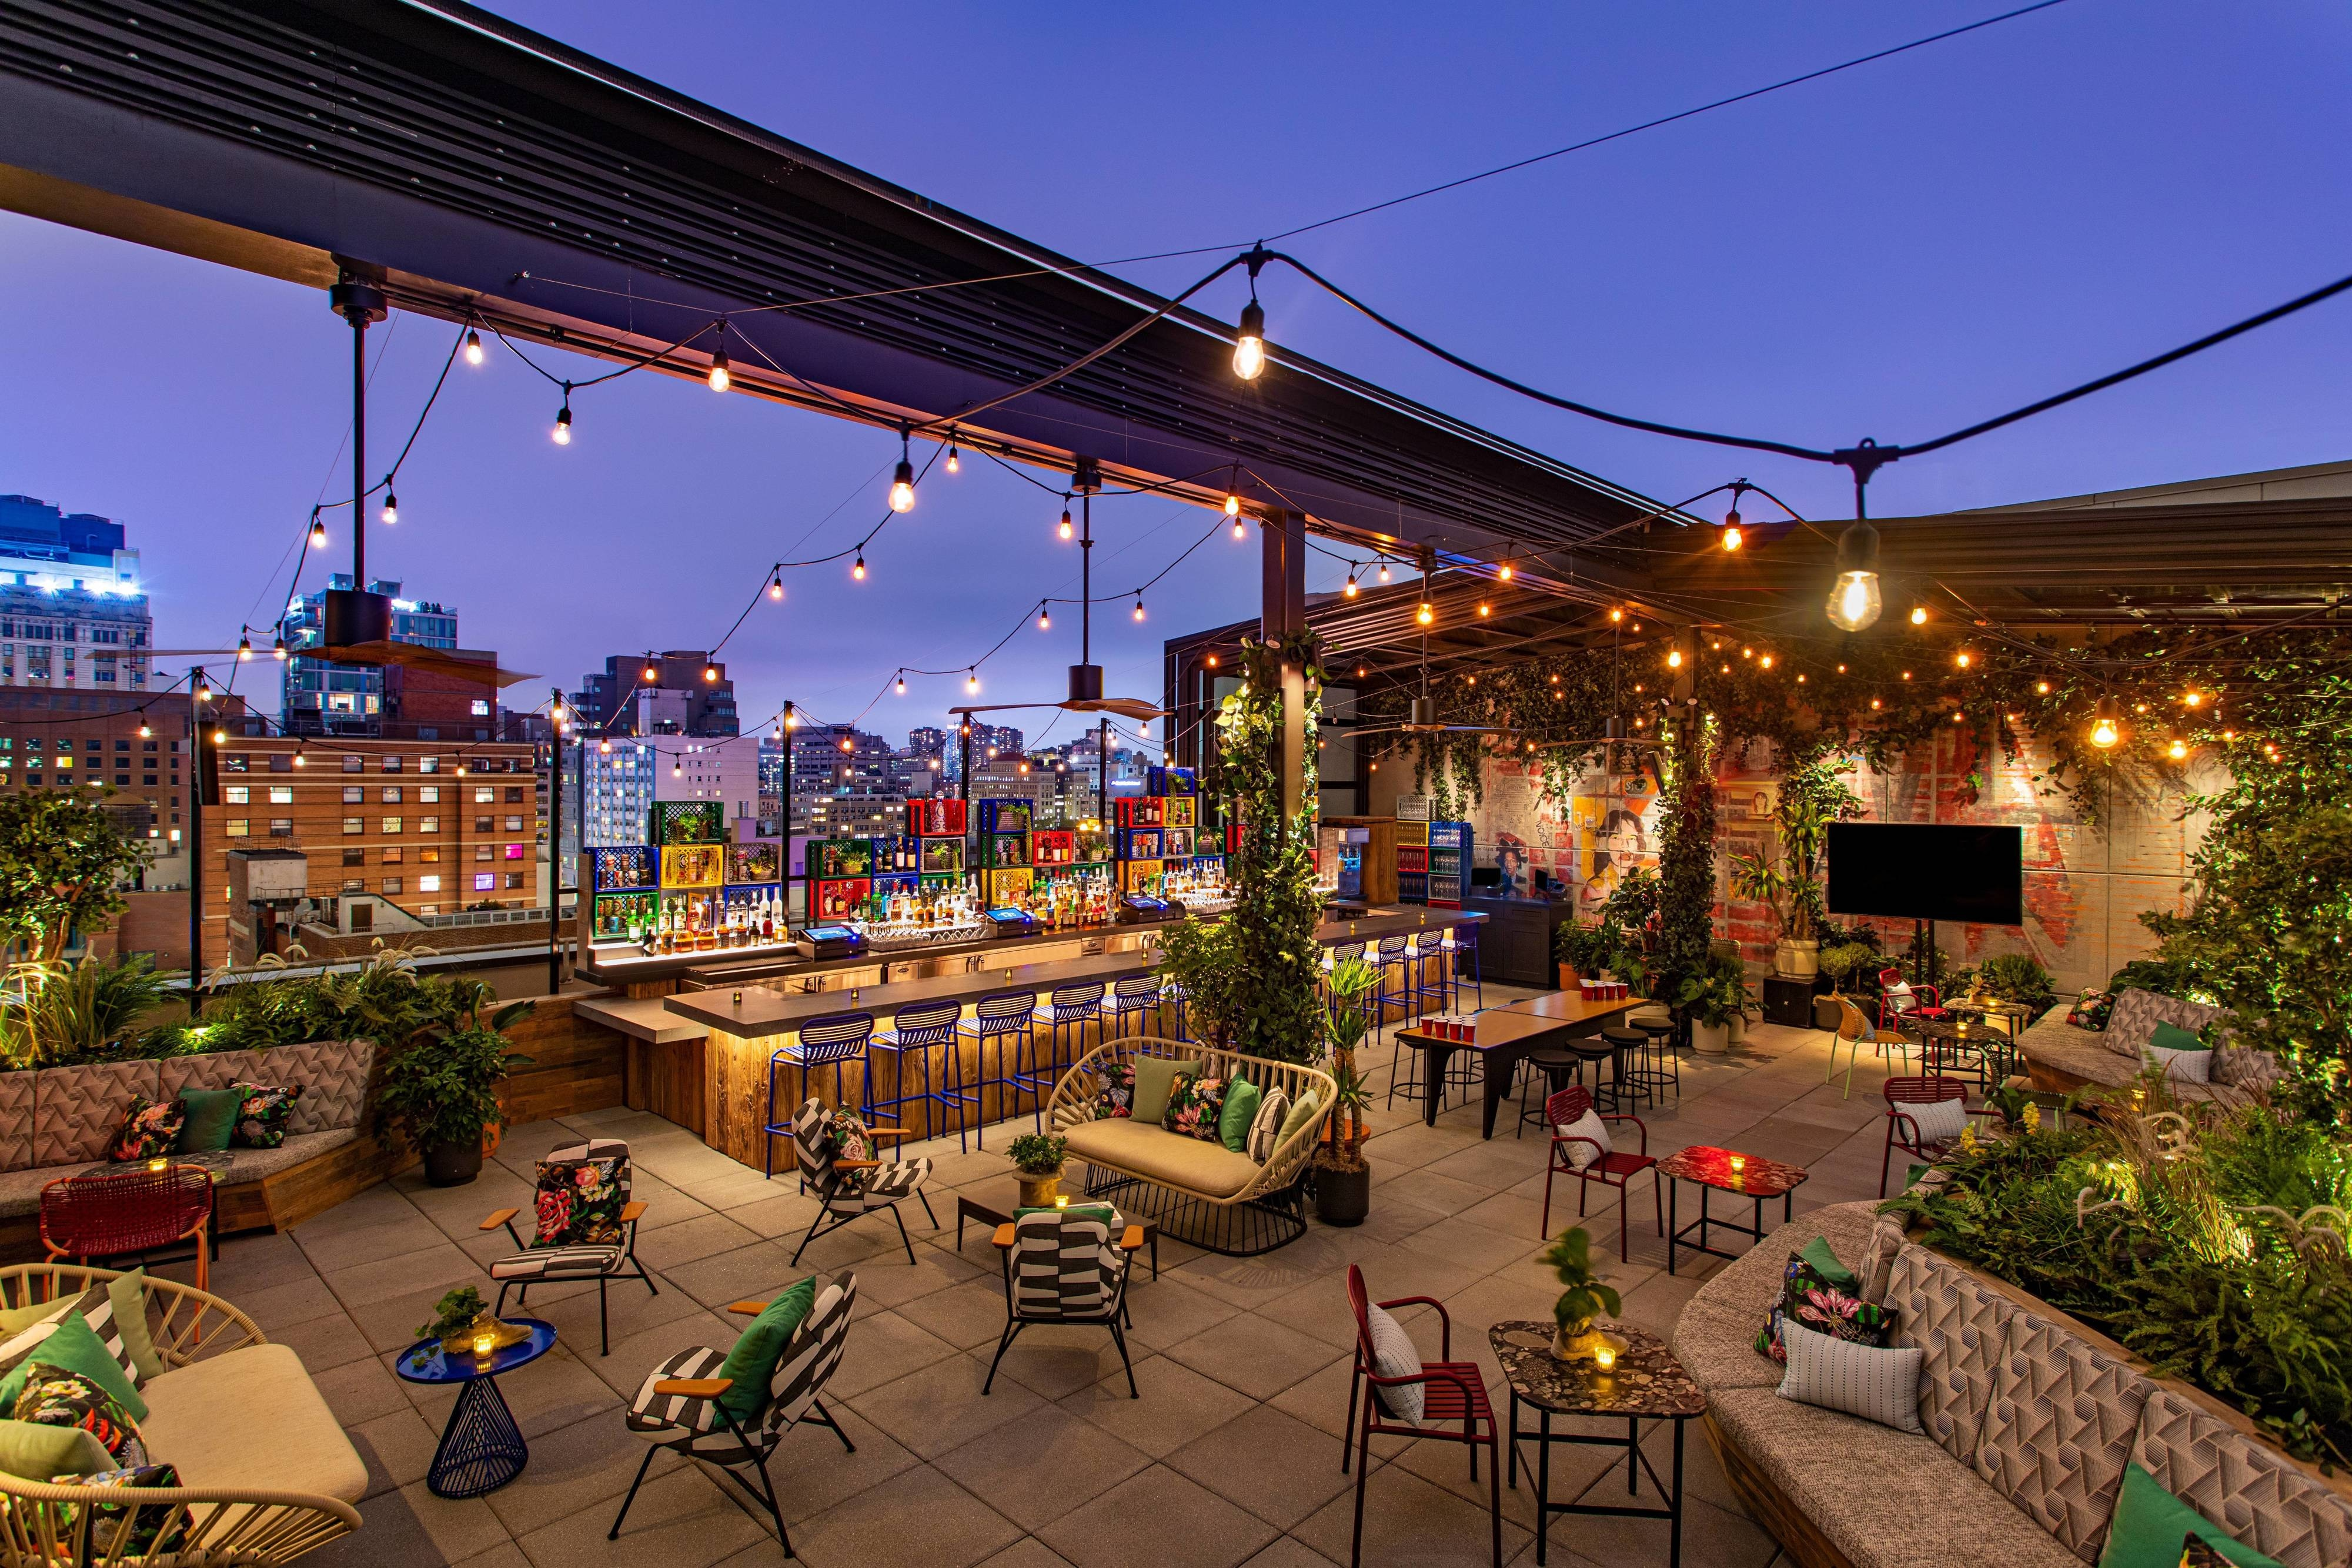 The Ready Rooftop